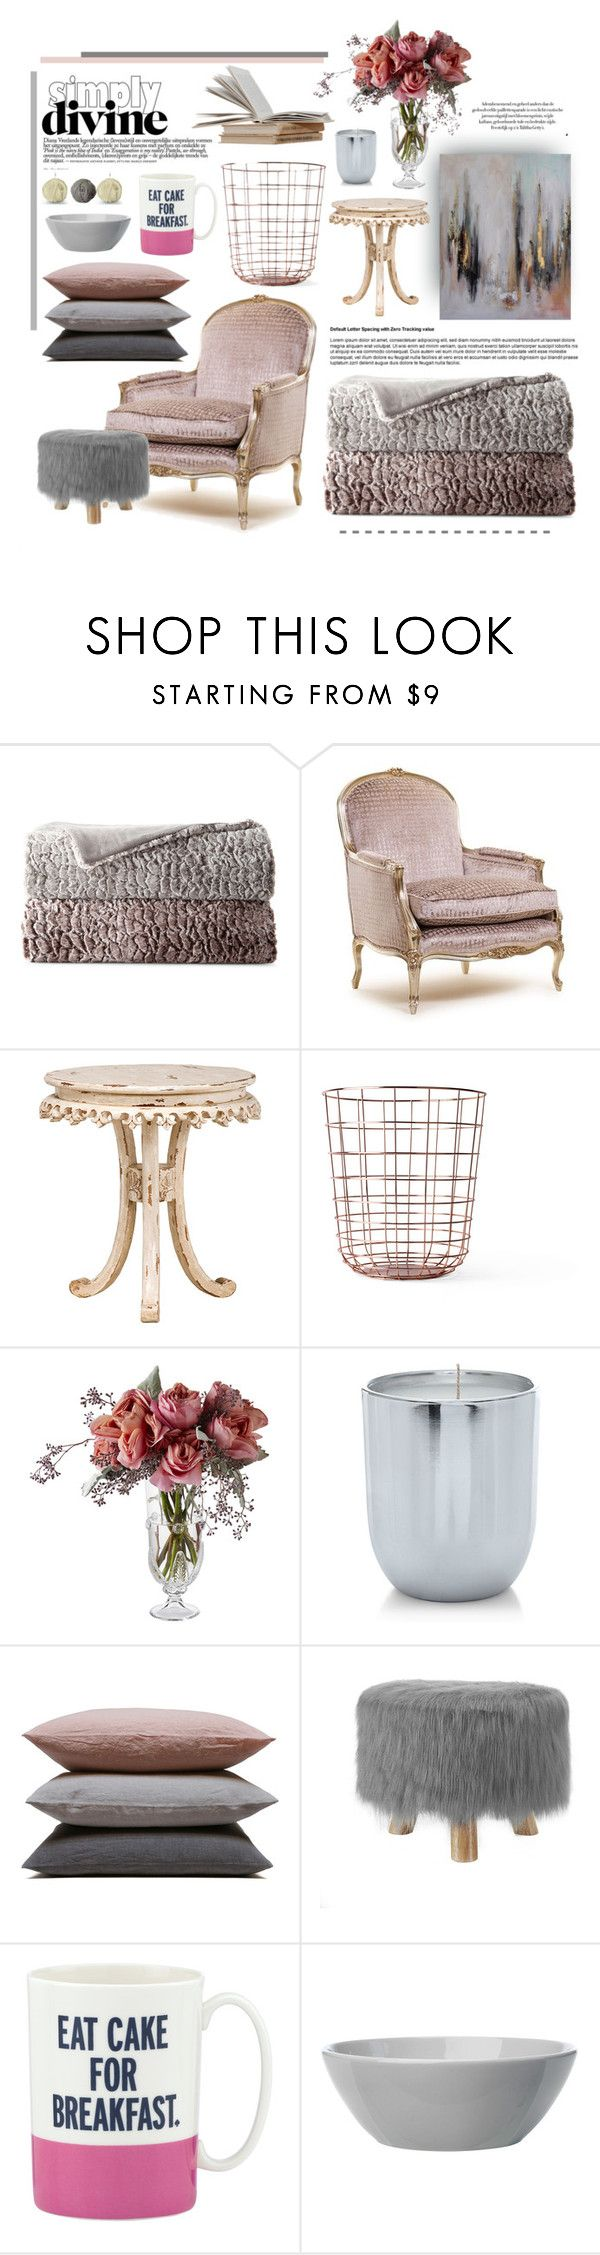 """""""Untitled #664"""" by heba-j on Polyvore featuring interior, interiors, interior design, home, home decor, interior decorating, JCPenney Home, BYRON, Menu and Juliska"""